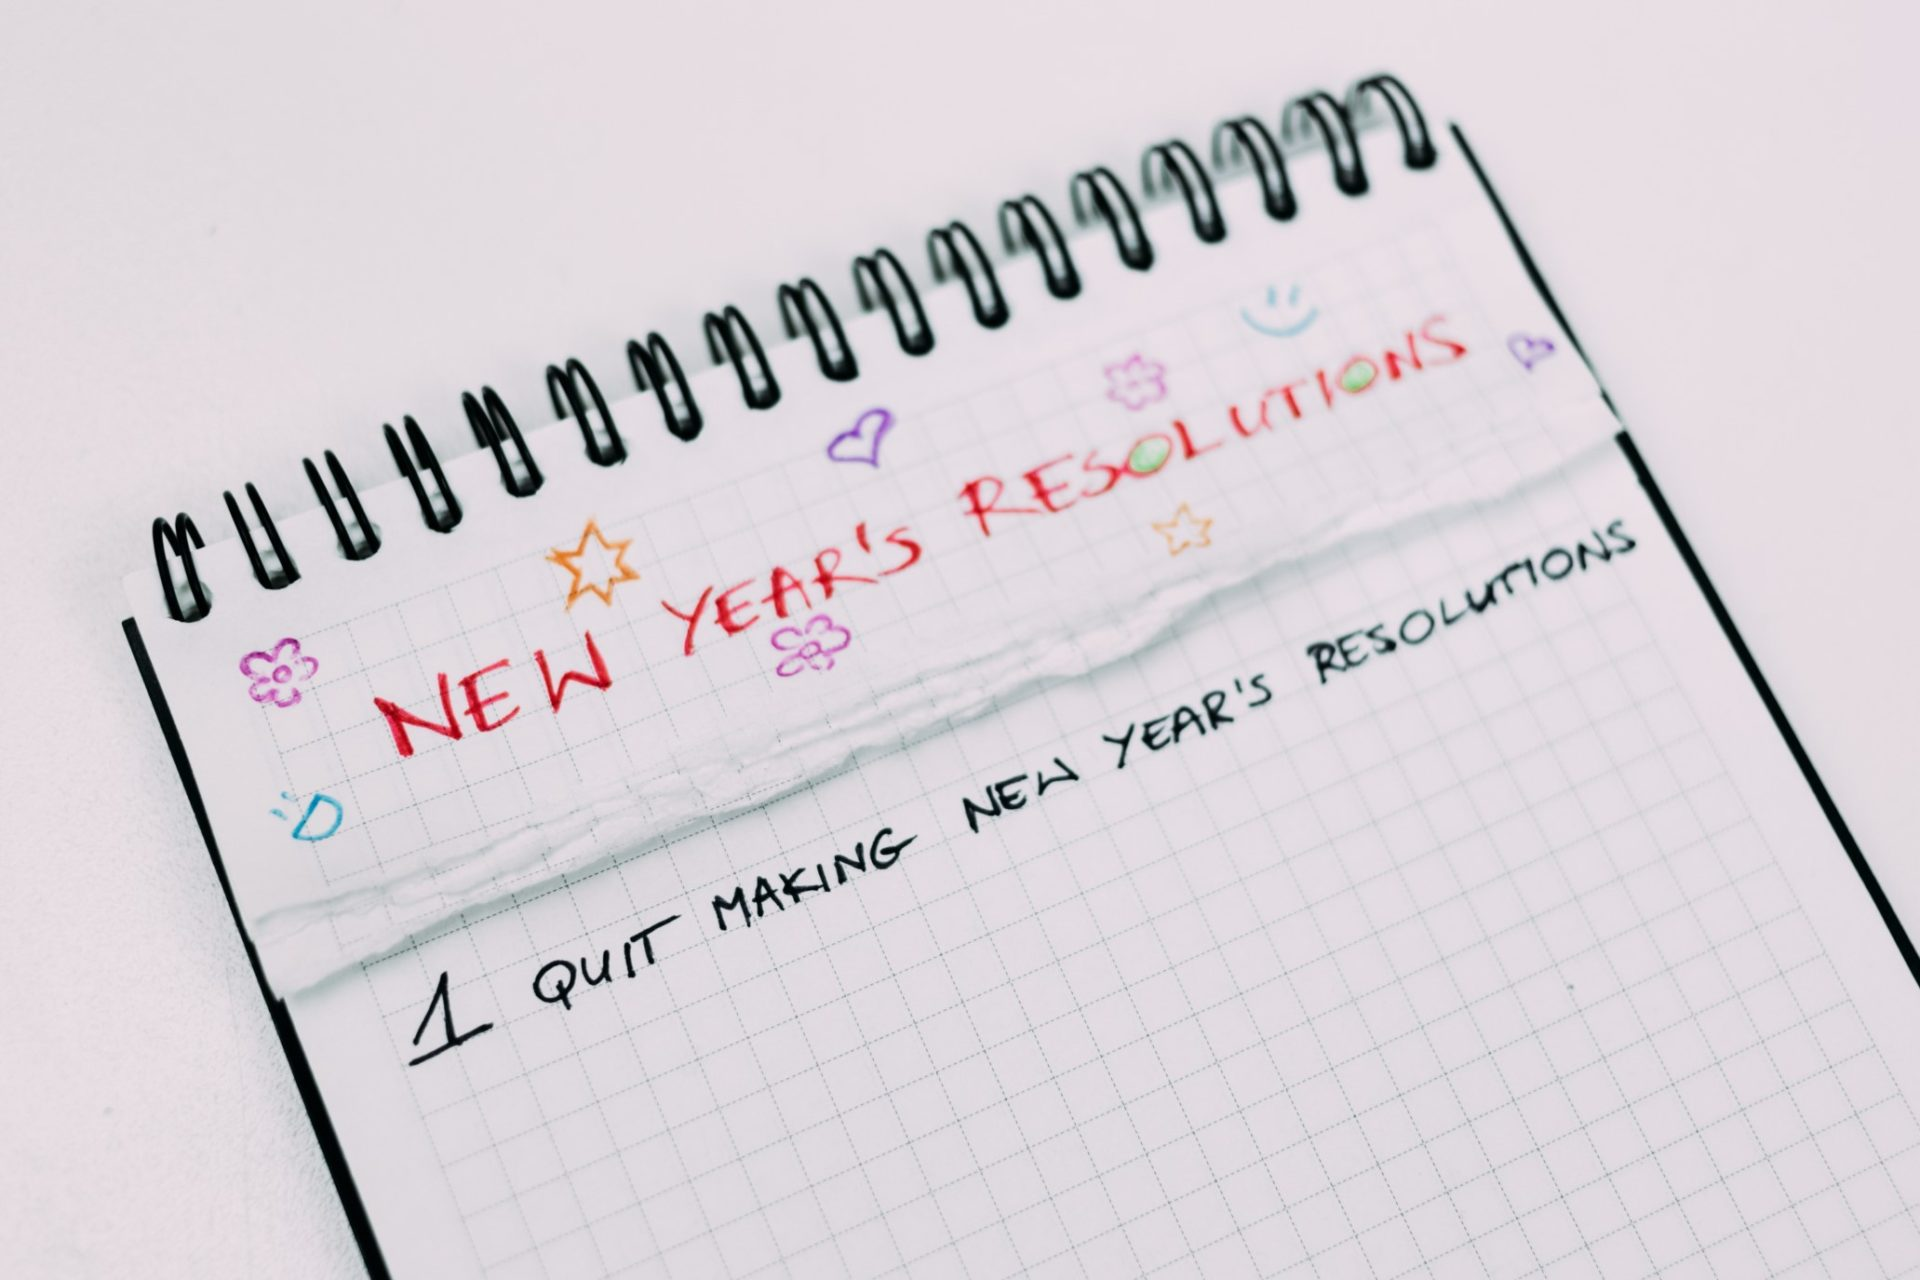 Intuitive Eating: New Year's Resolutions Image